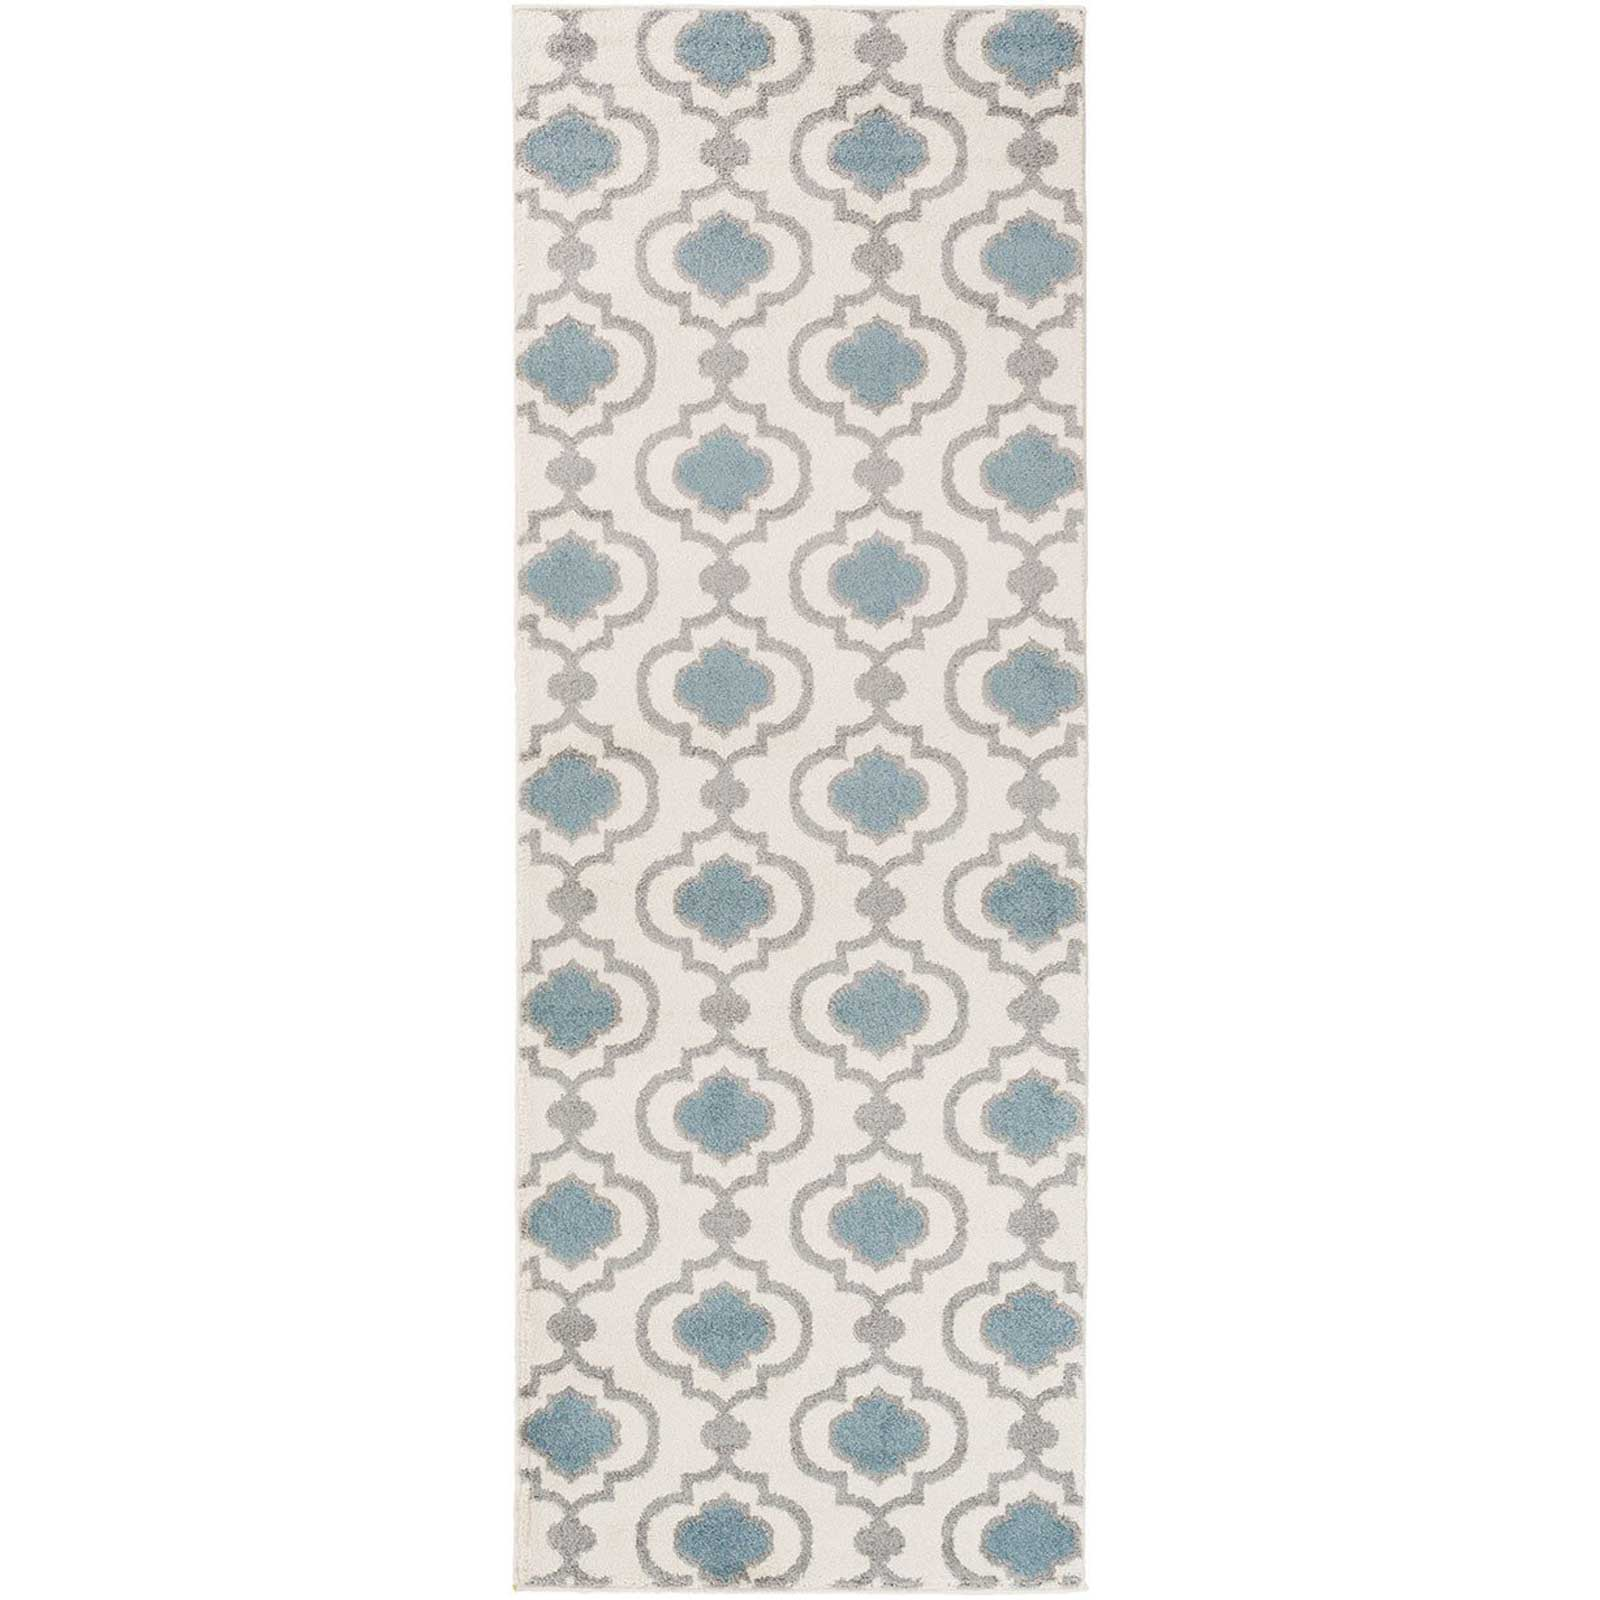 Horizon Ivory/Charcoal Runner Rug